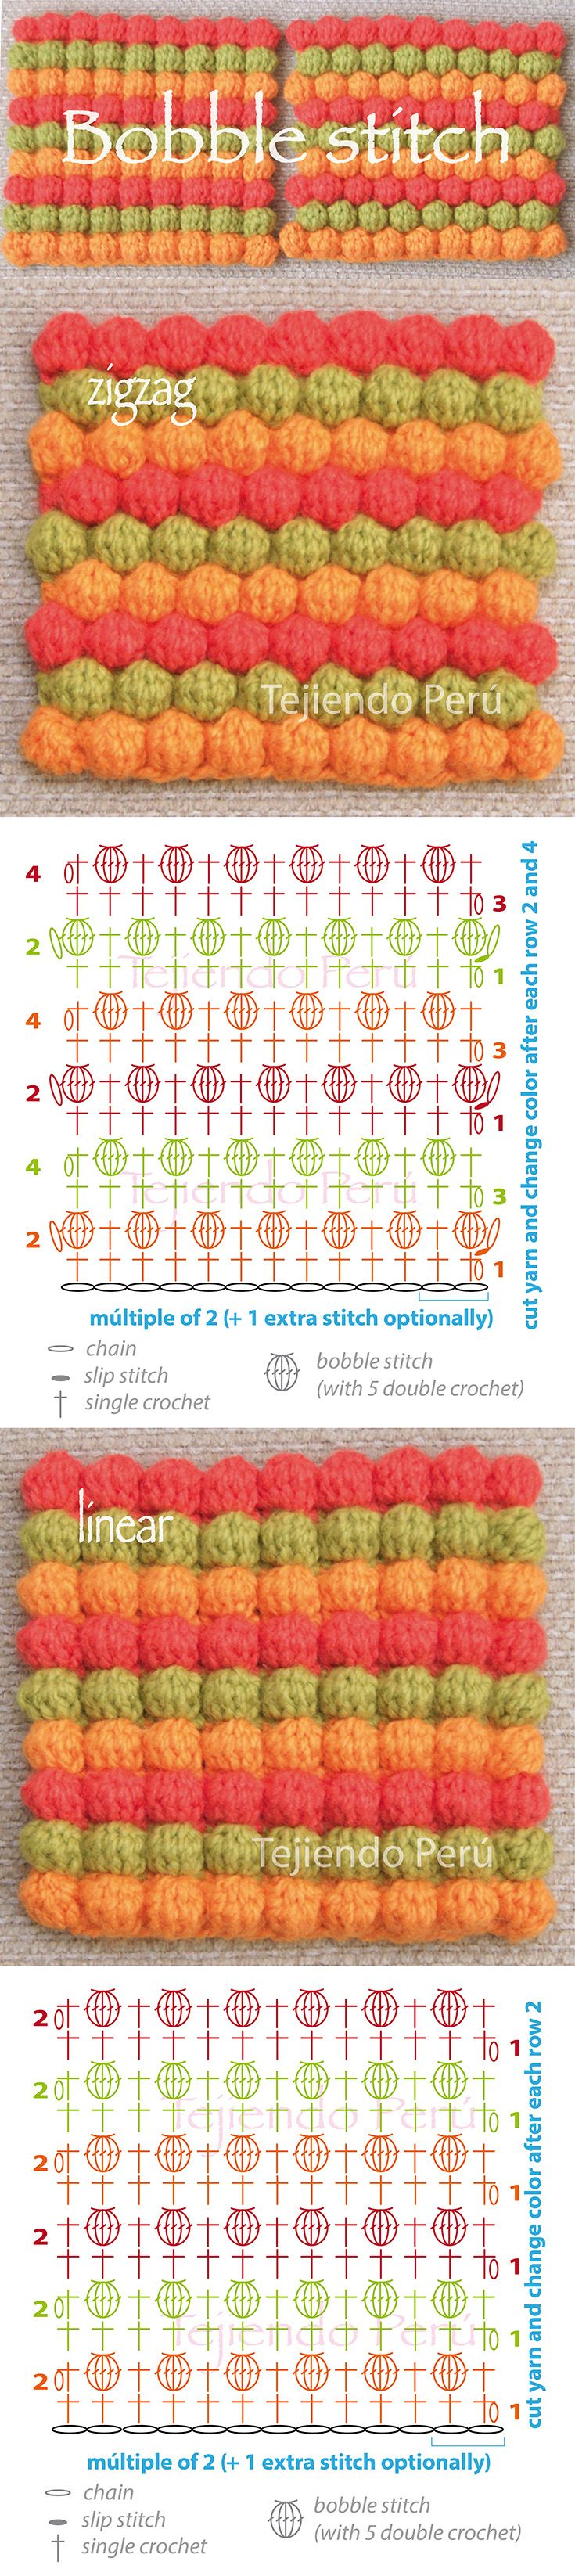 Crochet bobble stitch ir puff stitch pattern: zigzag and linear! (diagram or chart)